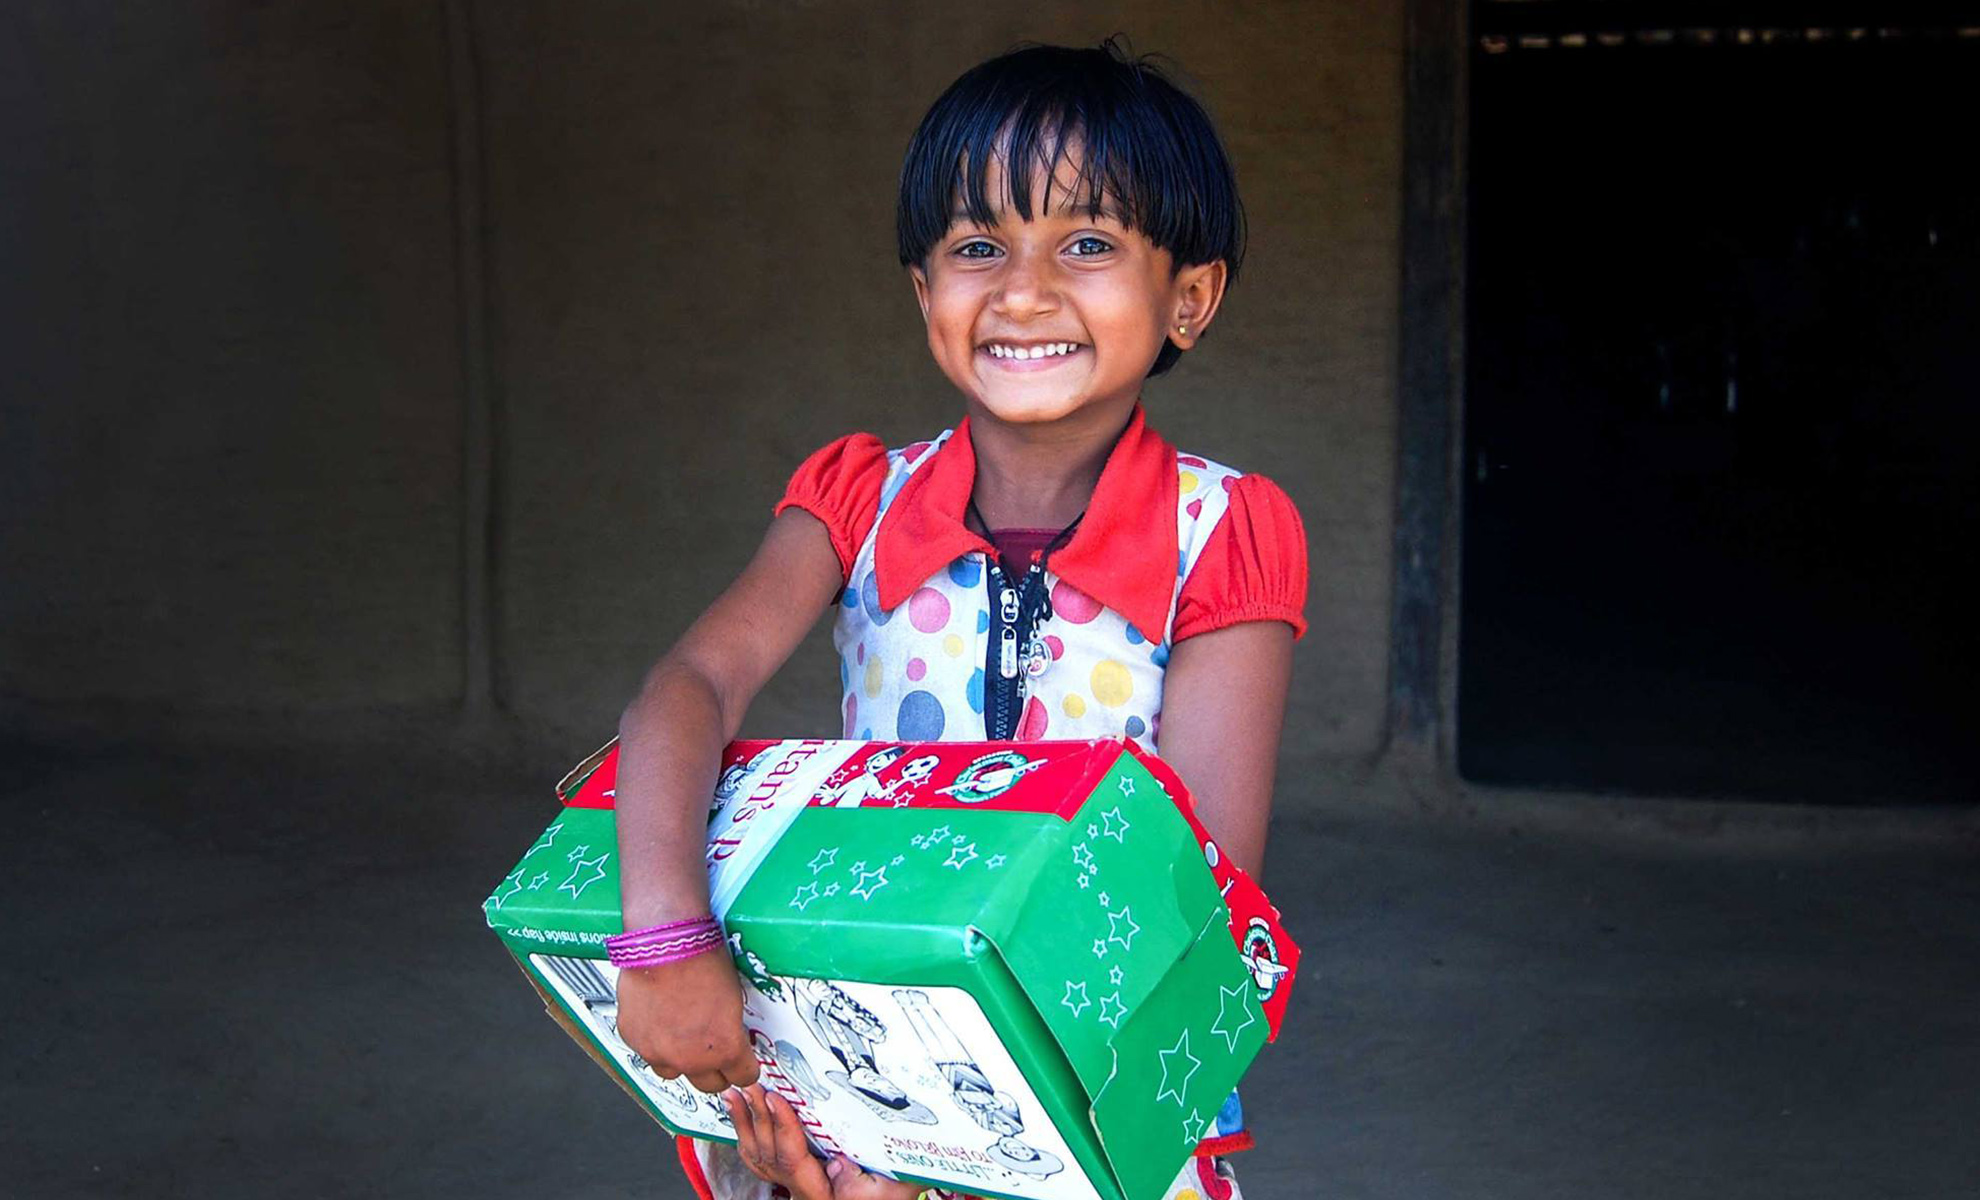 Young girl with shoebox gift smiles